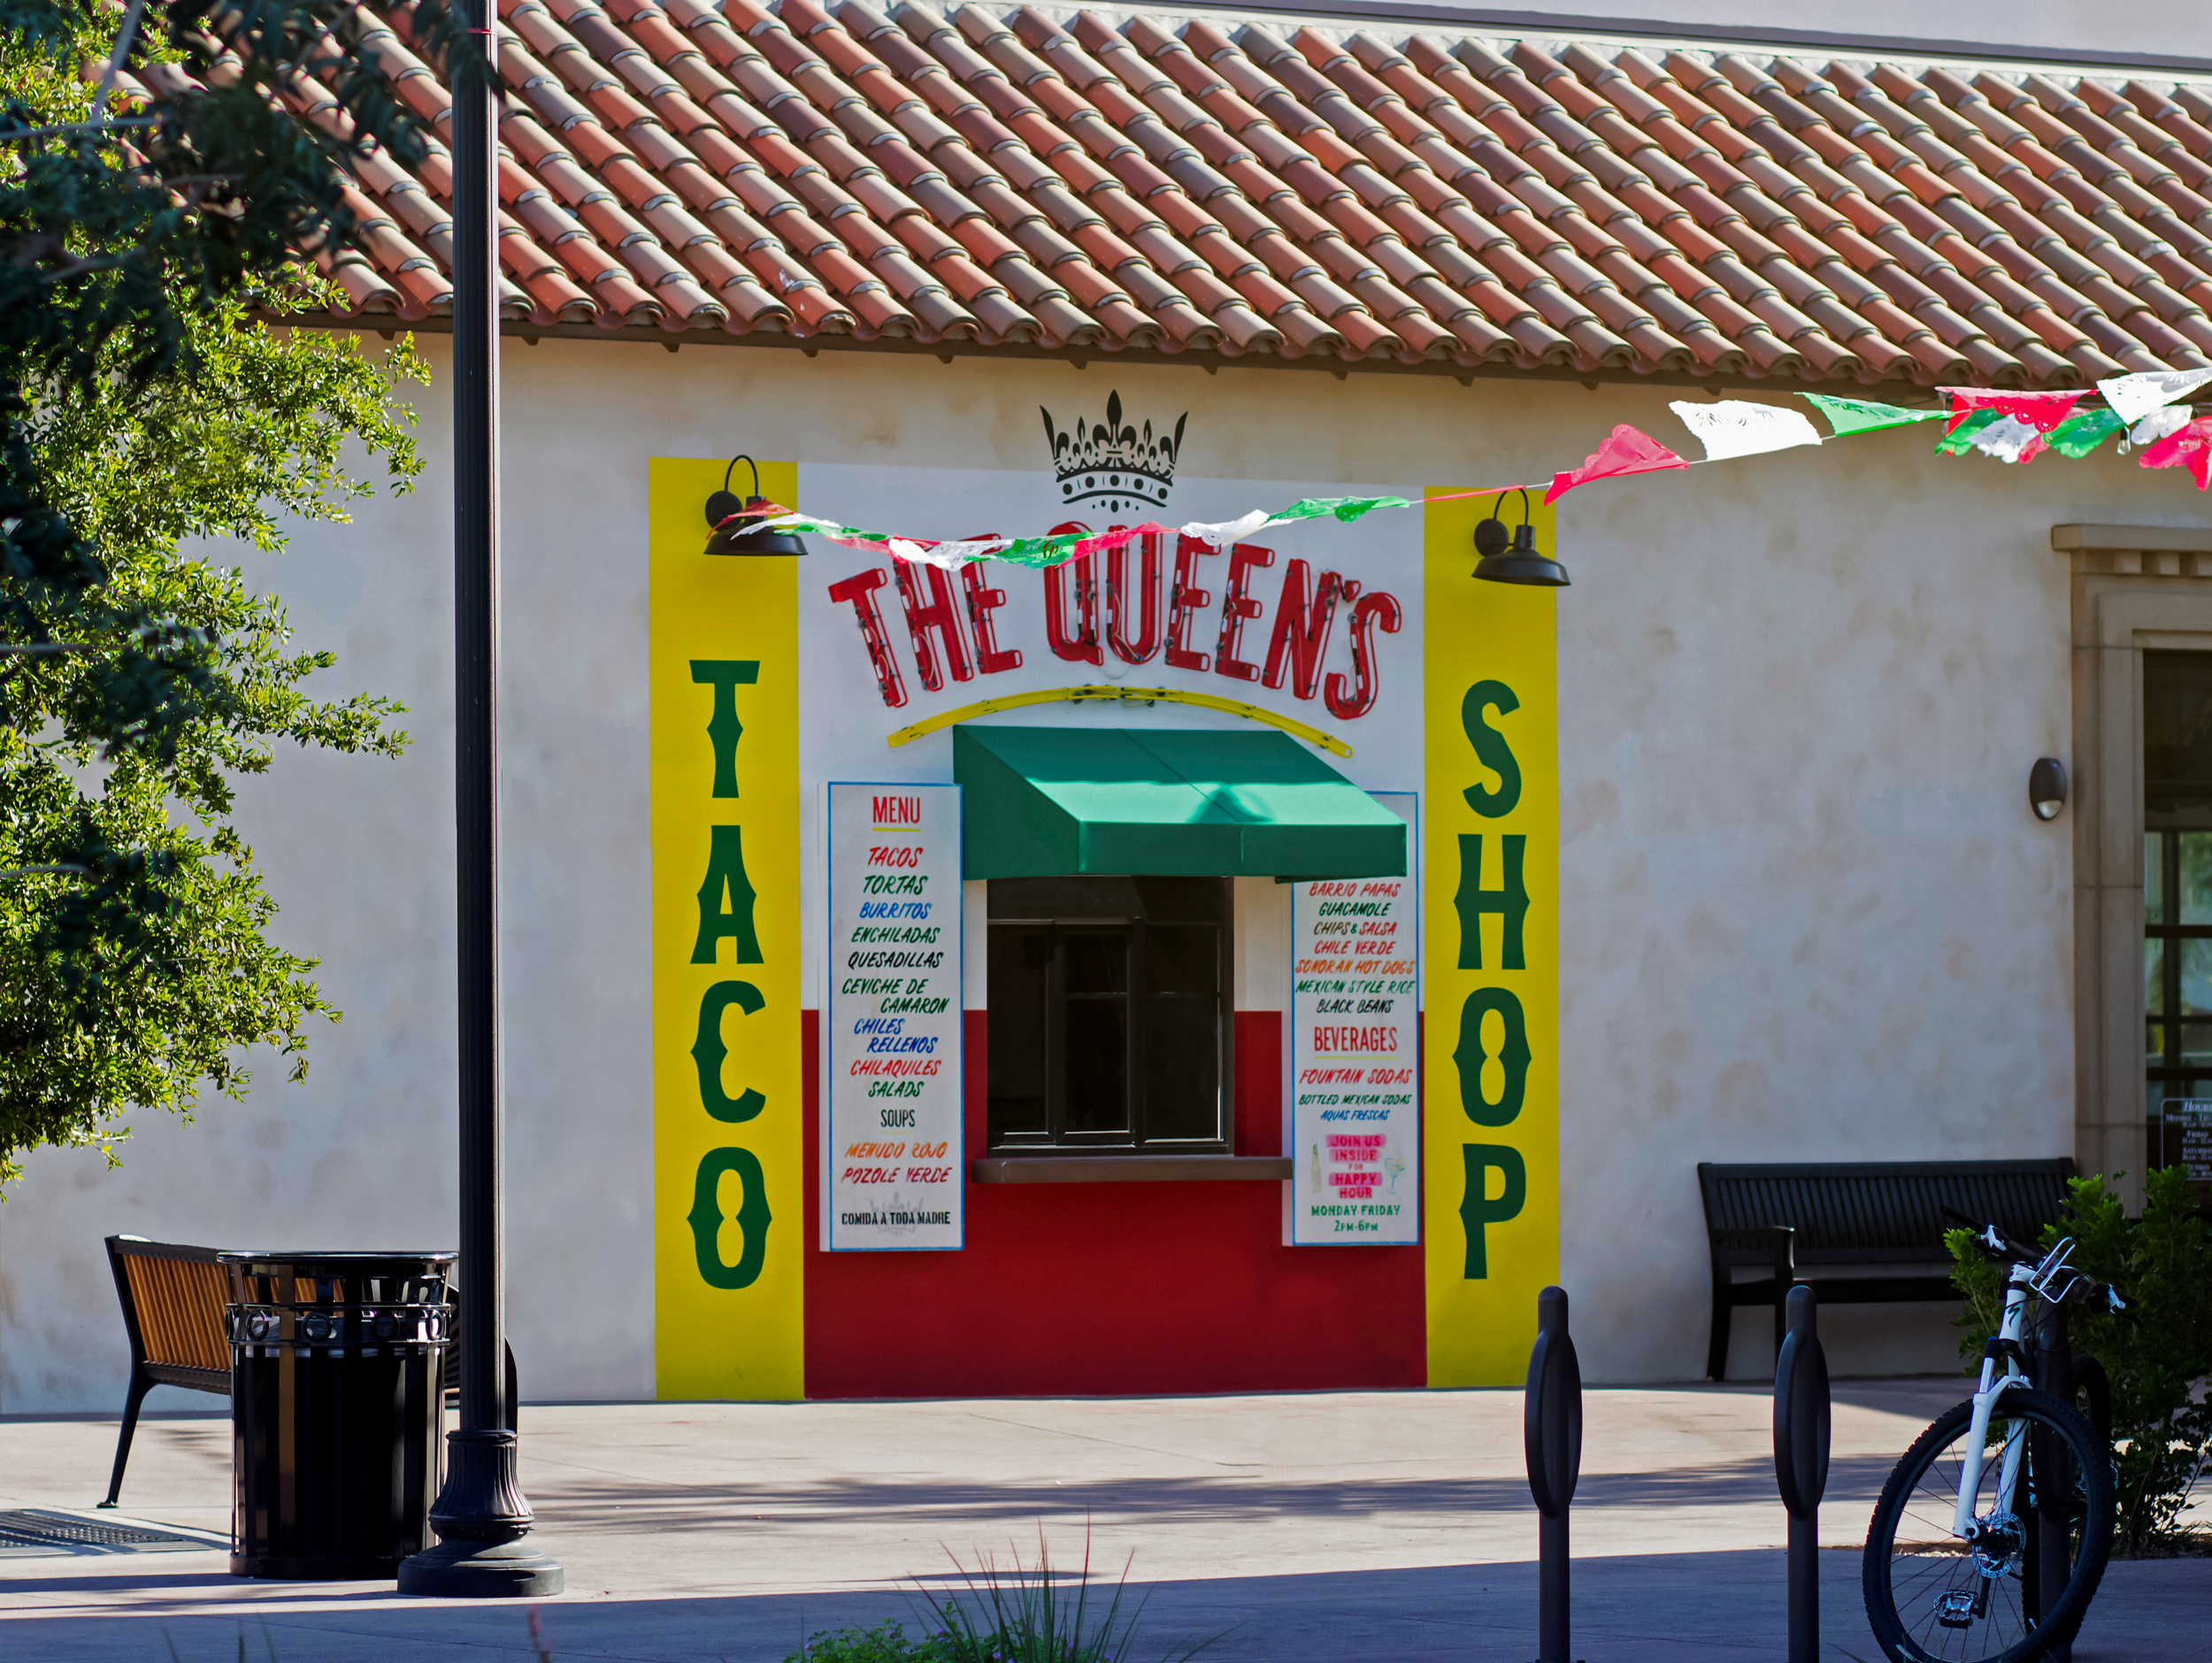 The Queen's Taco Shop painted wall mural is illuminated using downlights and skeleton neon.